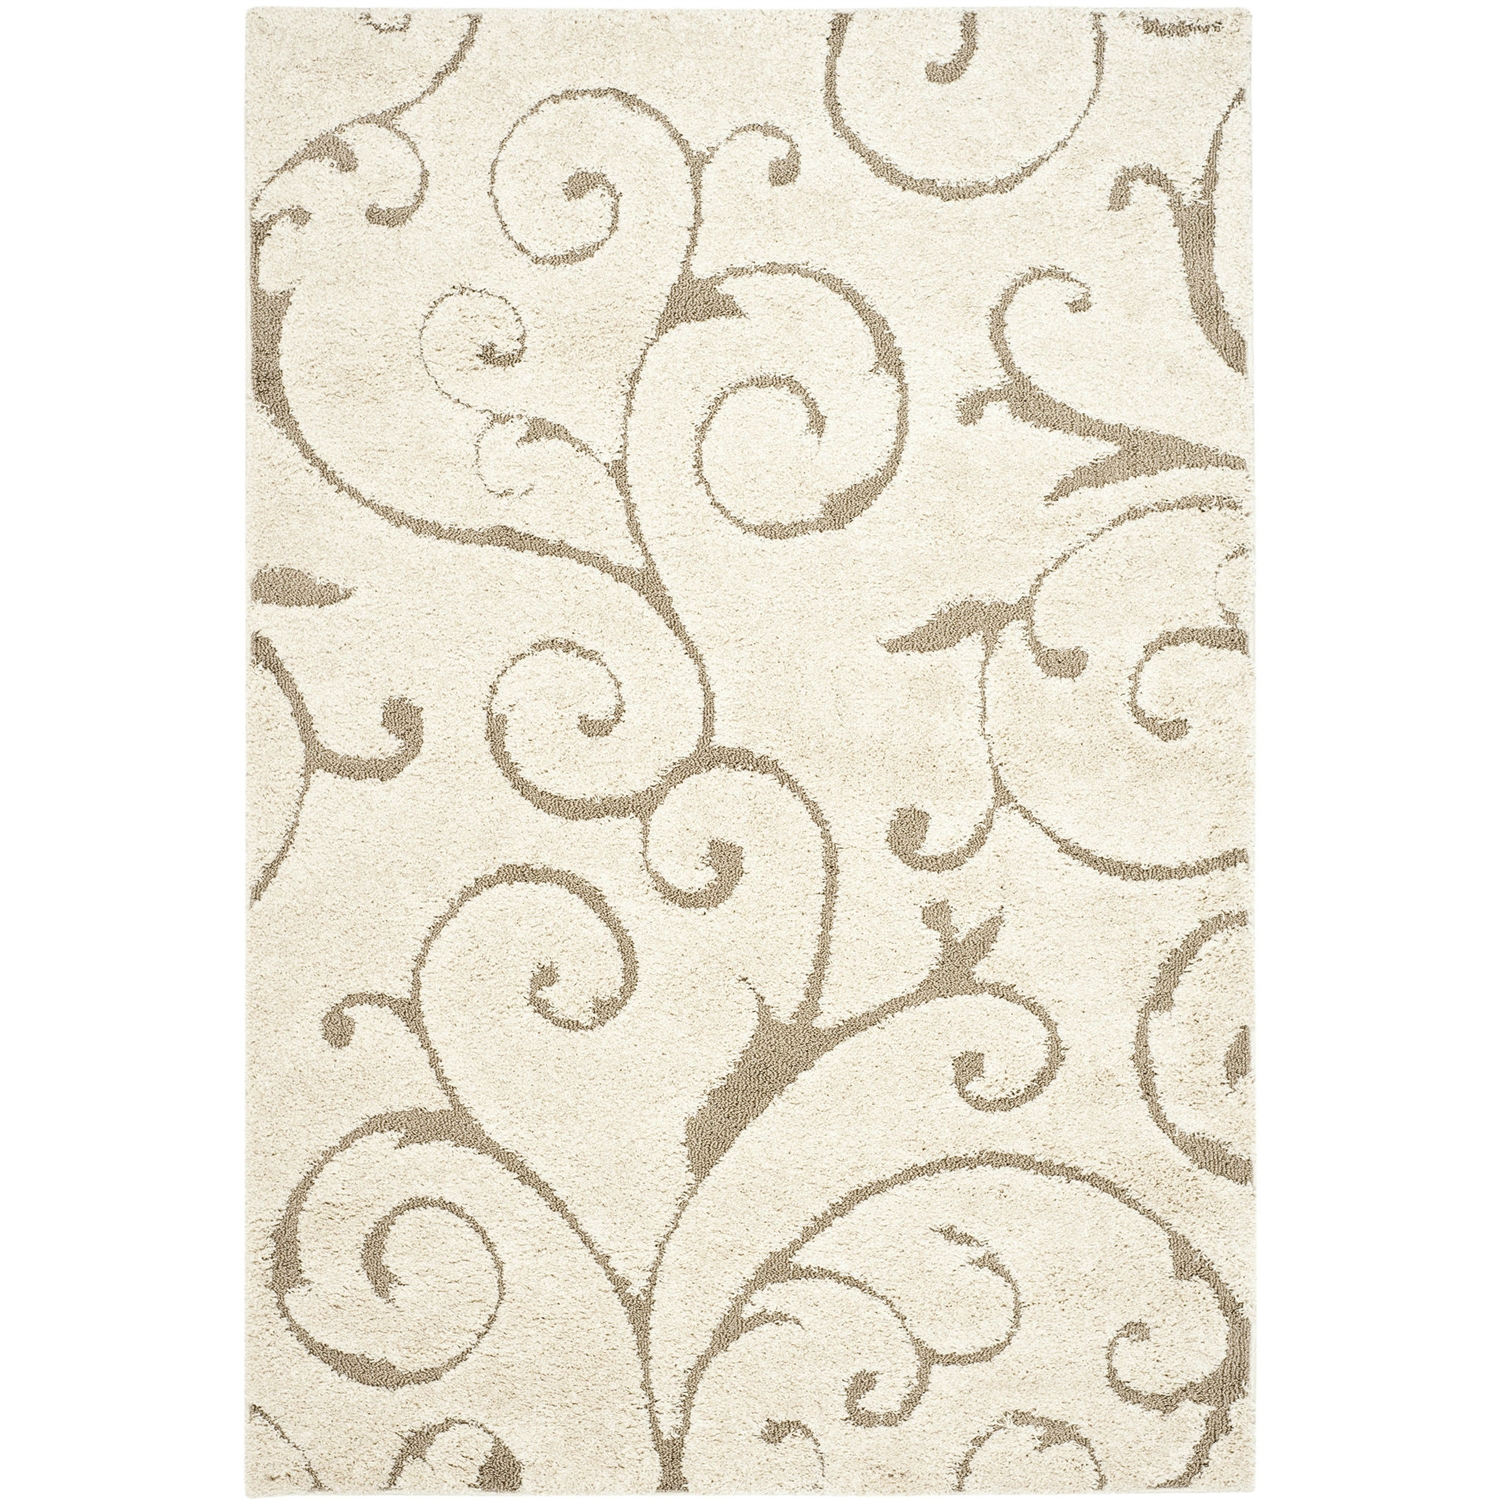 3 39 3 x 5 39 3 shag area rug in beige off white with scrolling for Garden shed 3x5